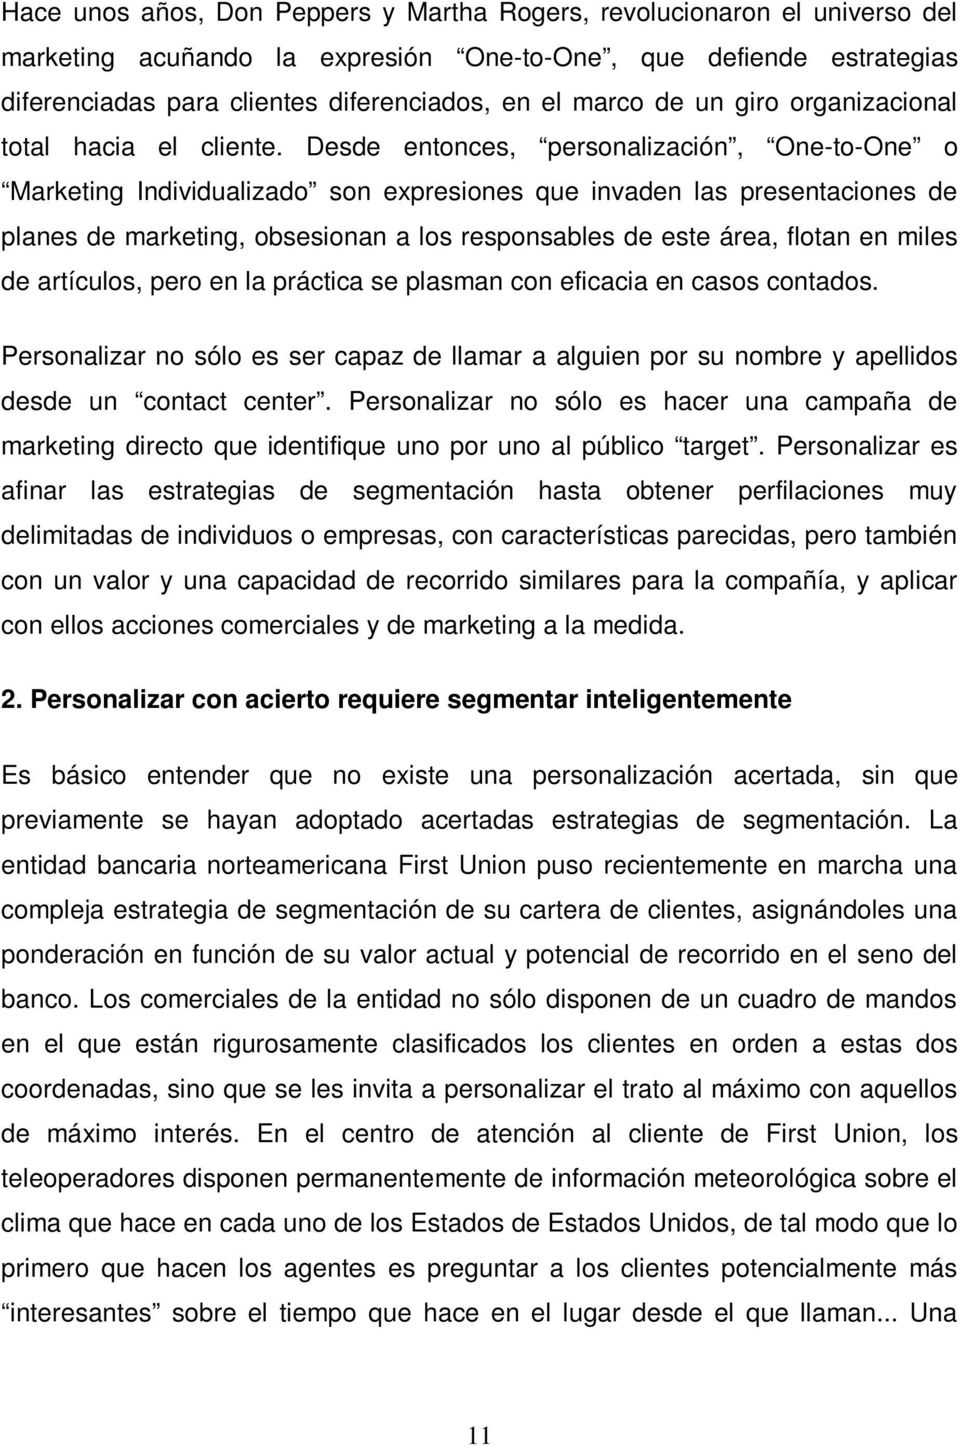 Desde entonces, personalización, One-to-One o Marketing Individualizado son expresiones que invaden las presentaciones de planes de marketing, obsesionan a los responsables de este área, flotan en